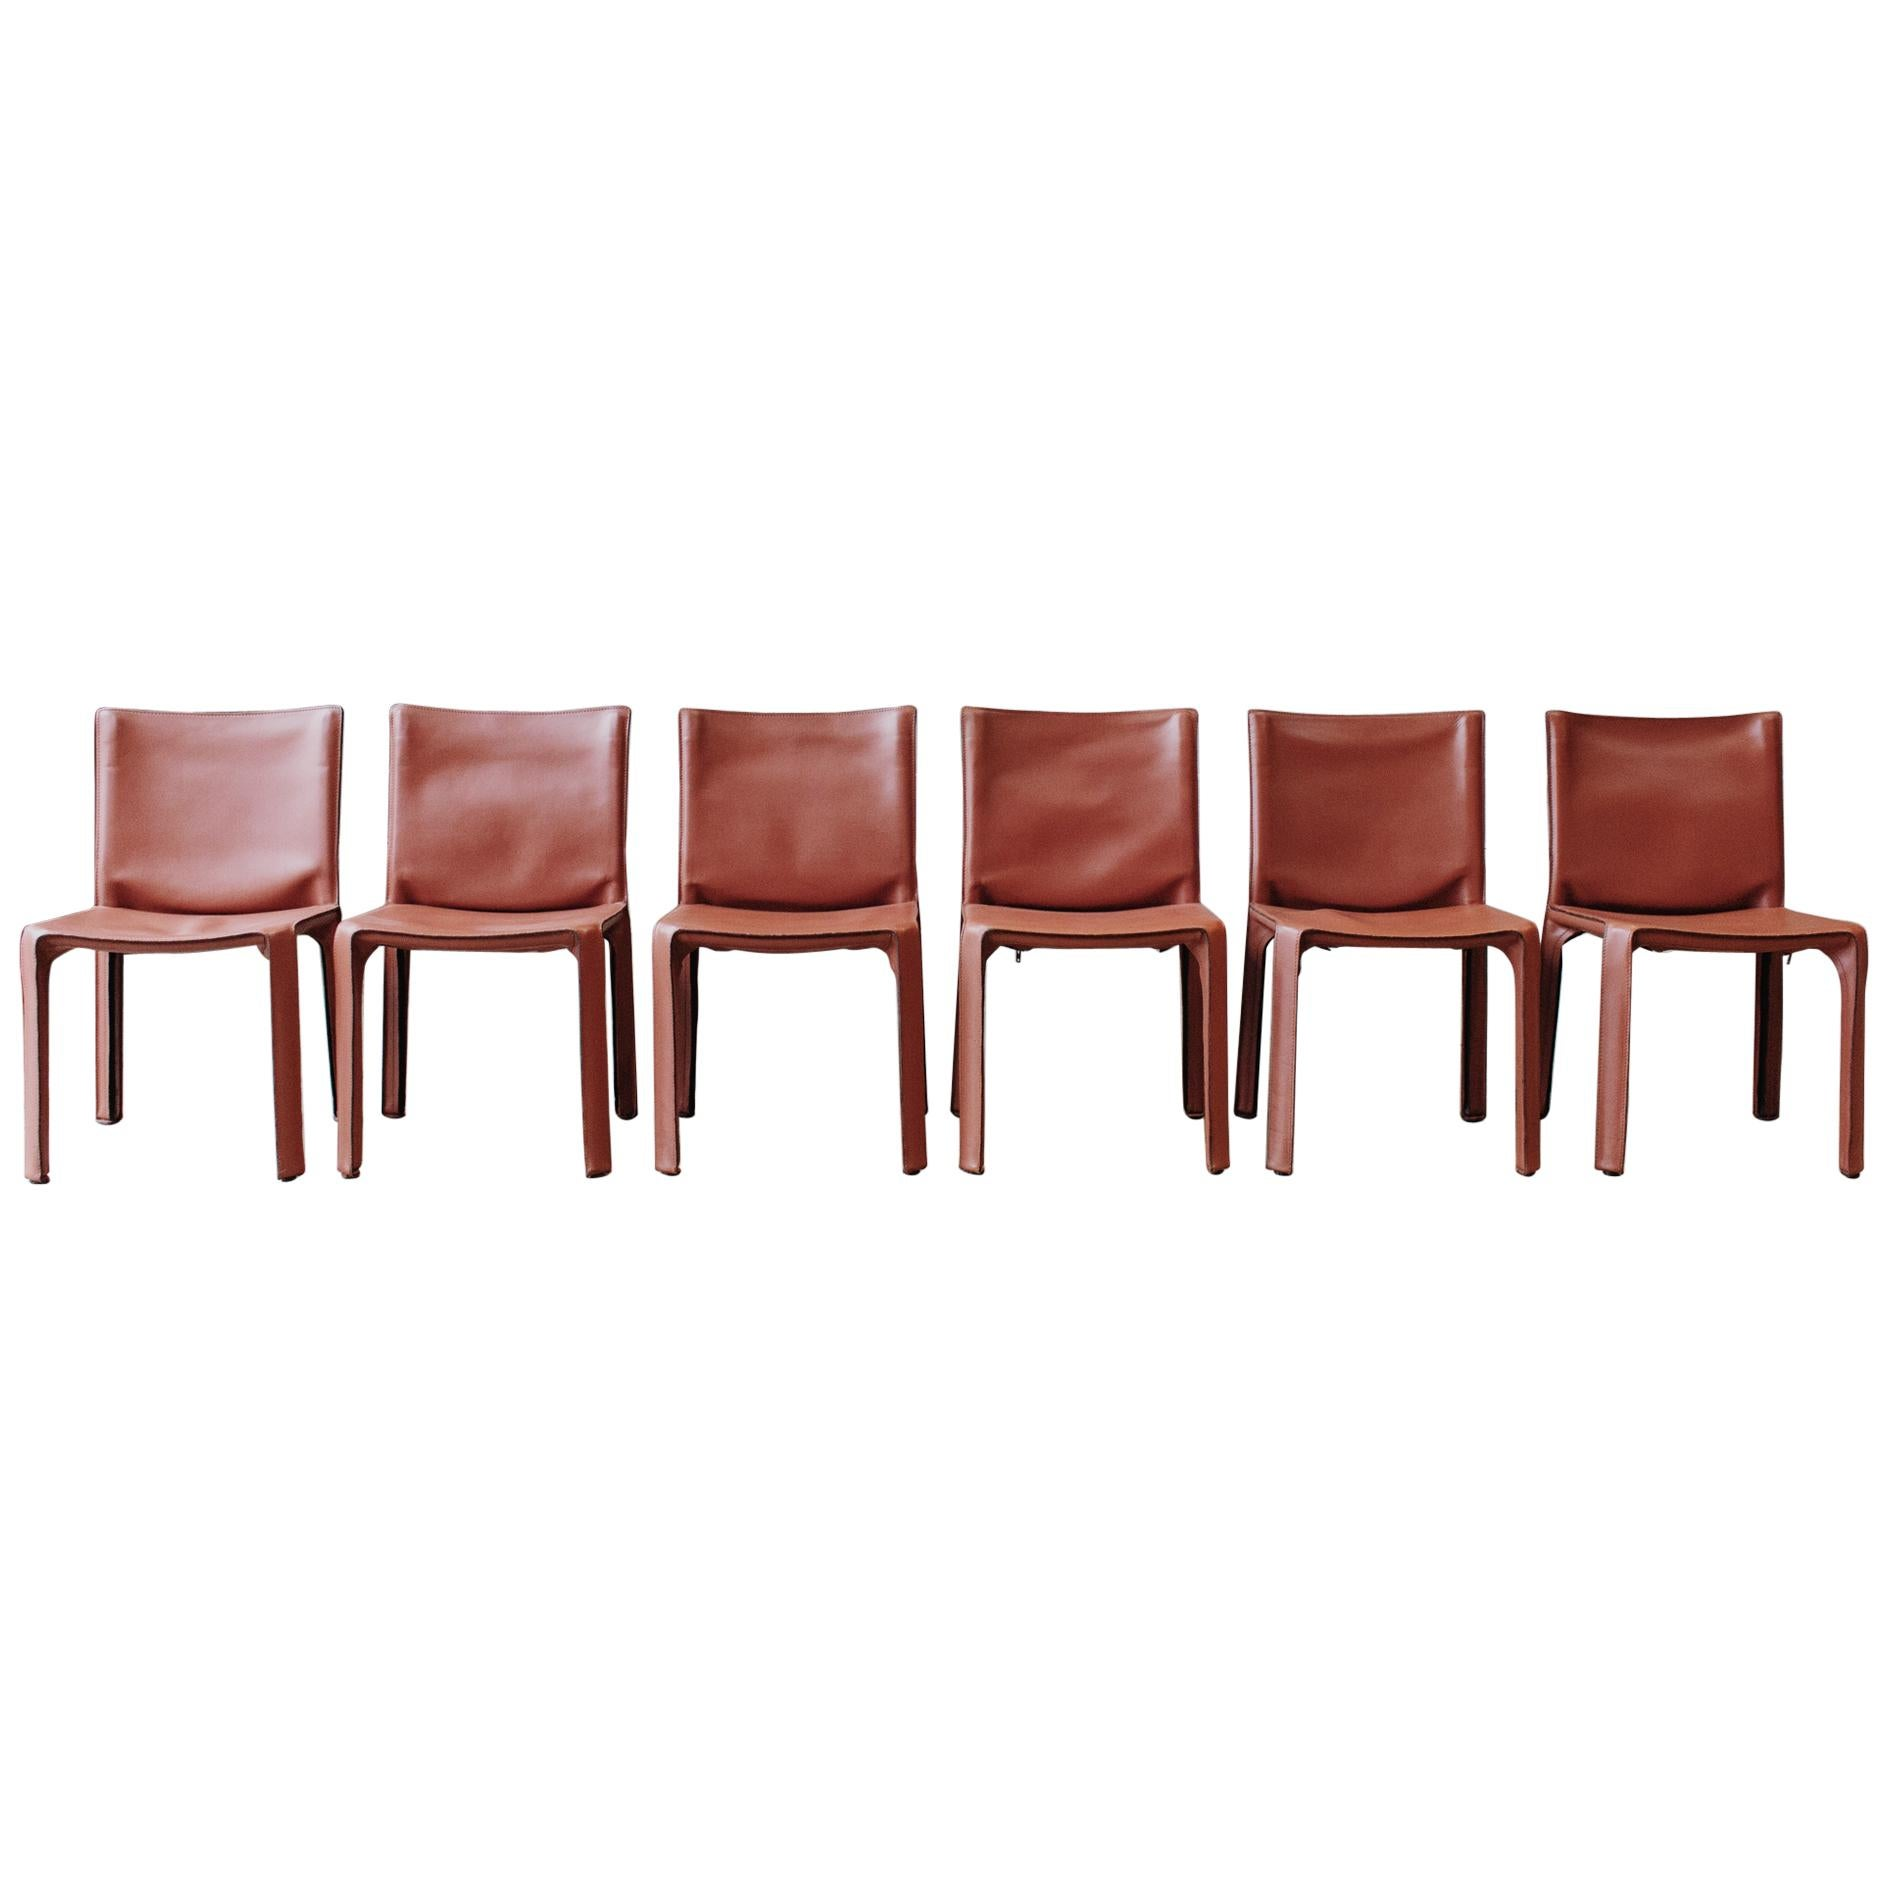 """Mario Bellini 412 """"CAB"""" Dining Chairs for Cassina, 1978, Set of 6"""